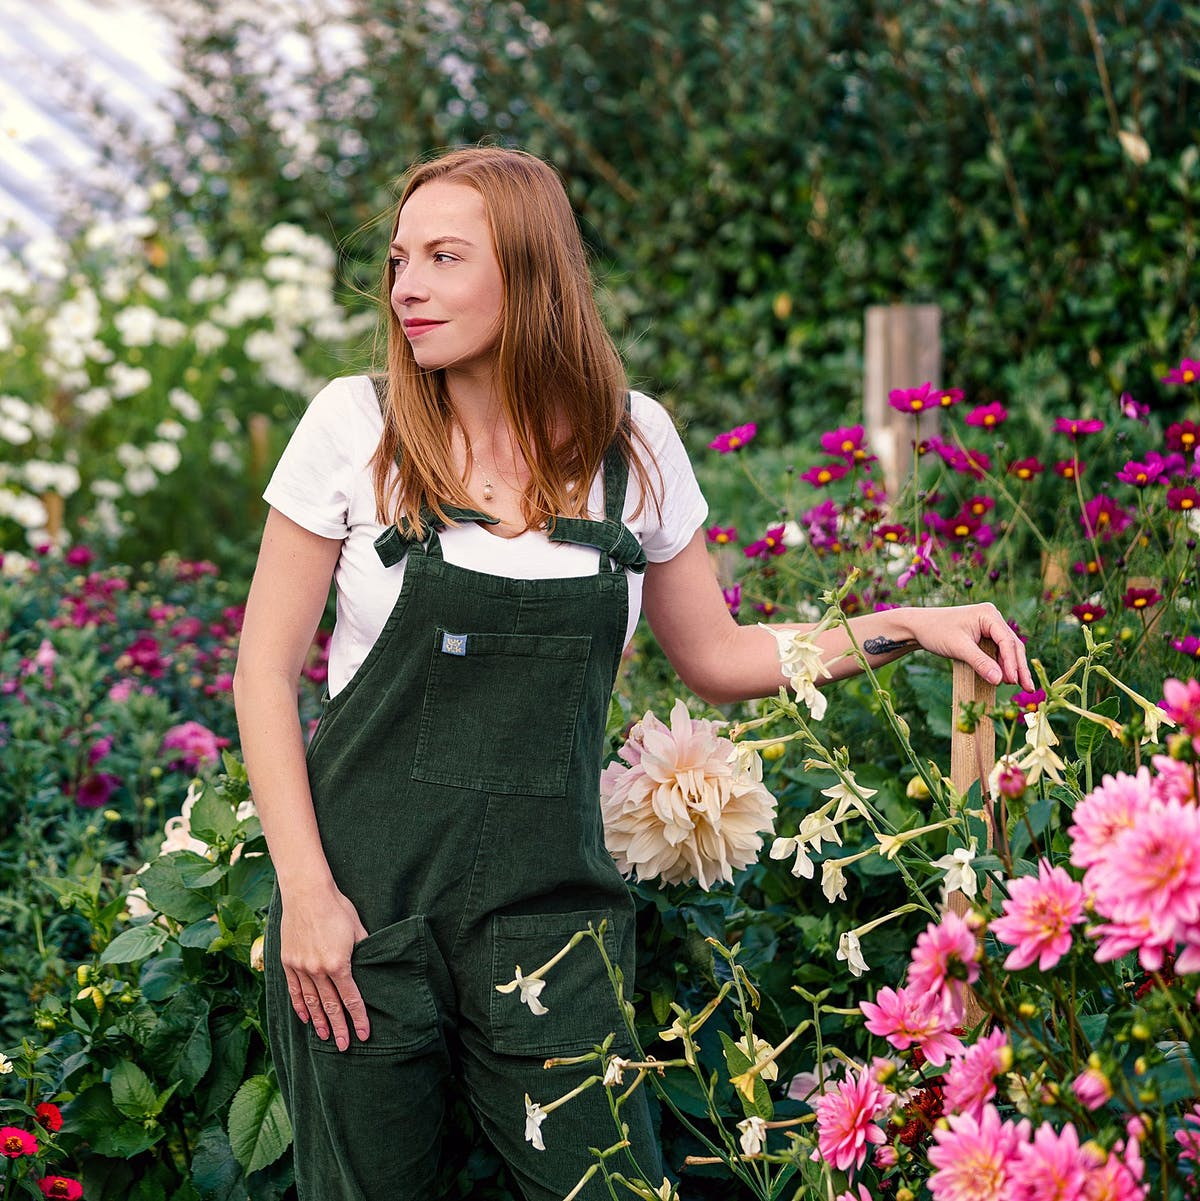 Why gardening therapy can work as an early mental health intervention